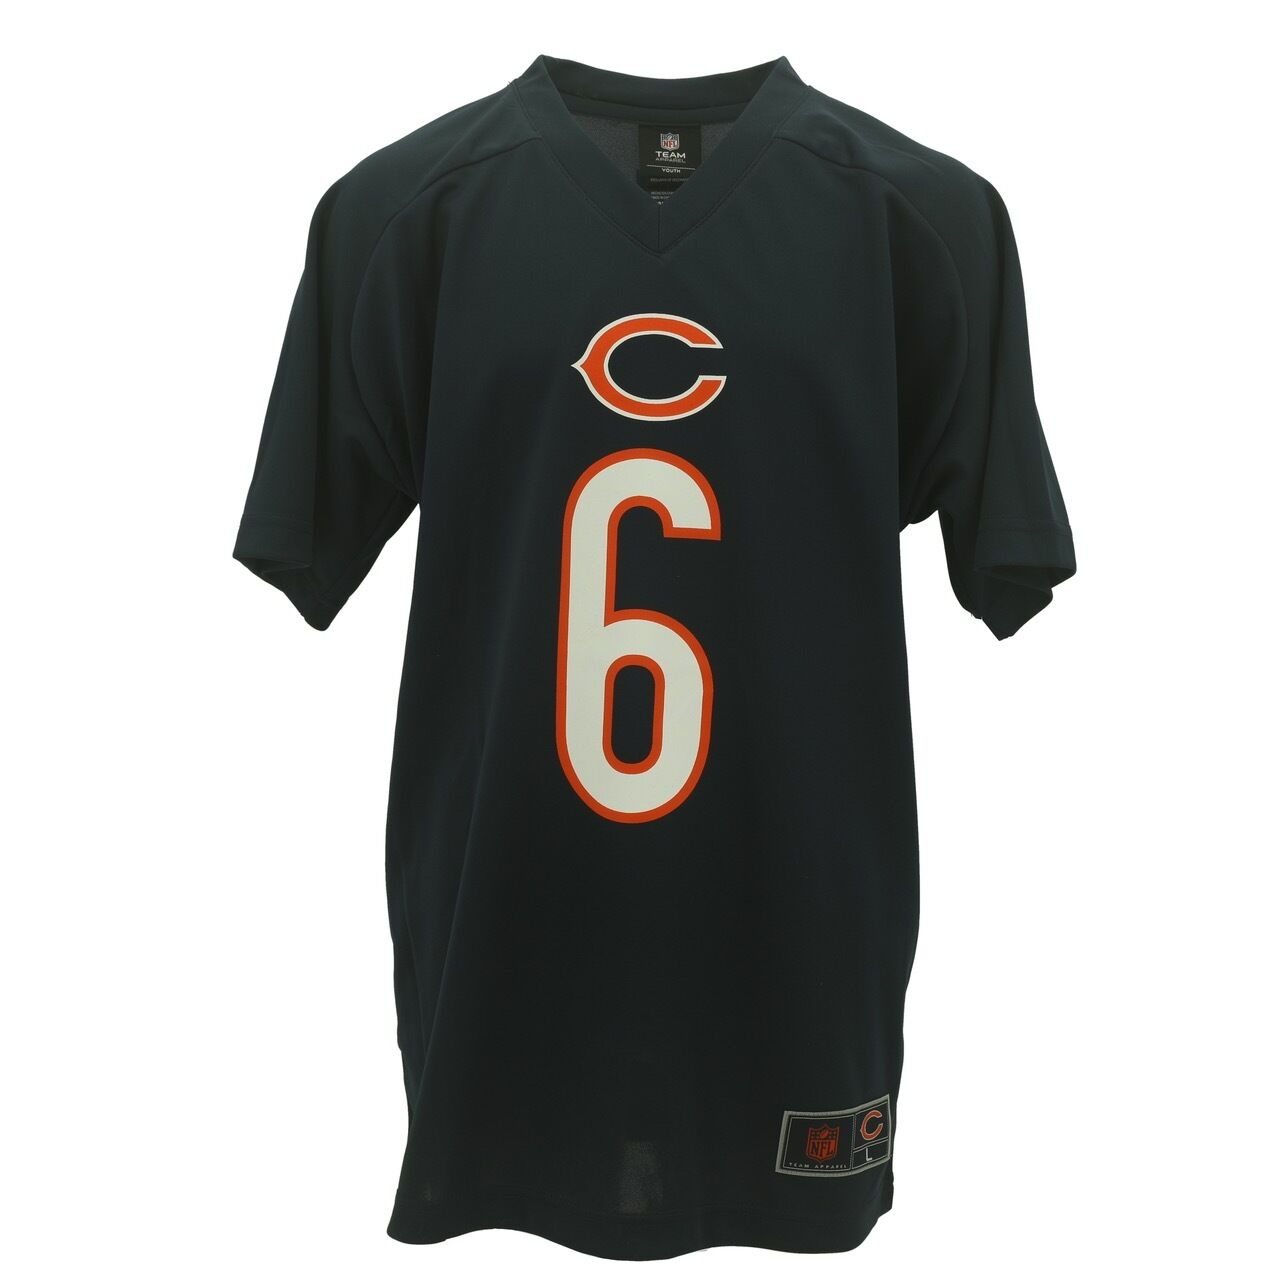 Chicago Bears Jay Cutler NFL Kids Youth Size Jersey Style Athletic Shirt New 0403b4f4bf8